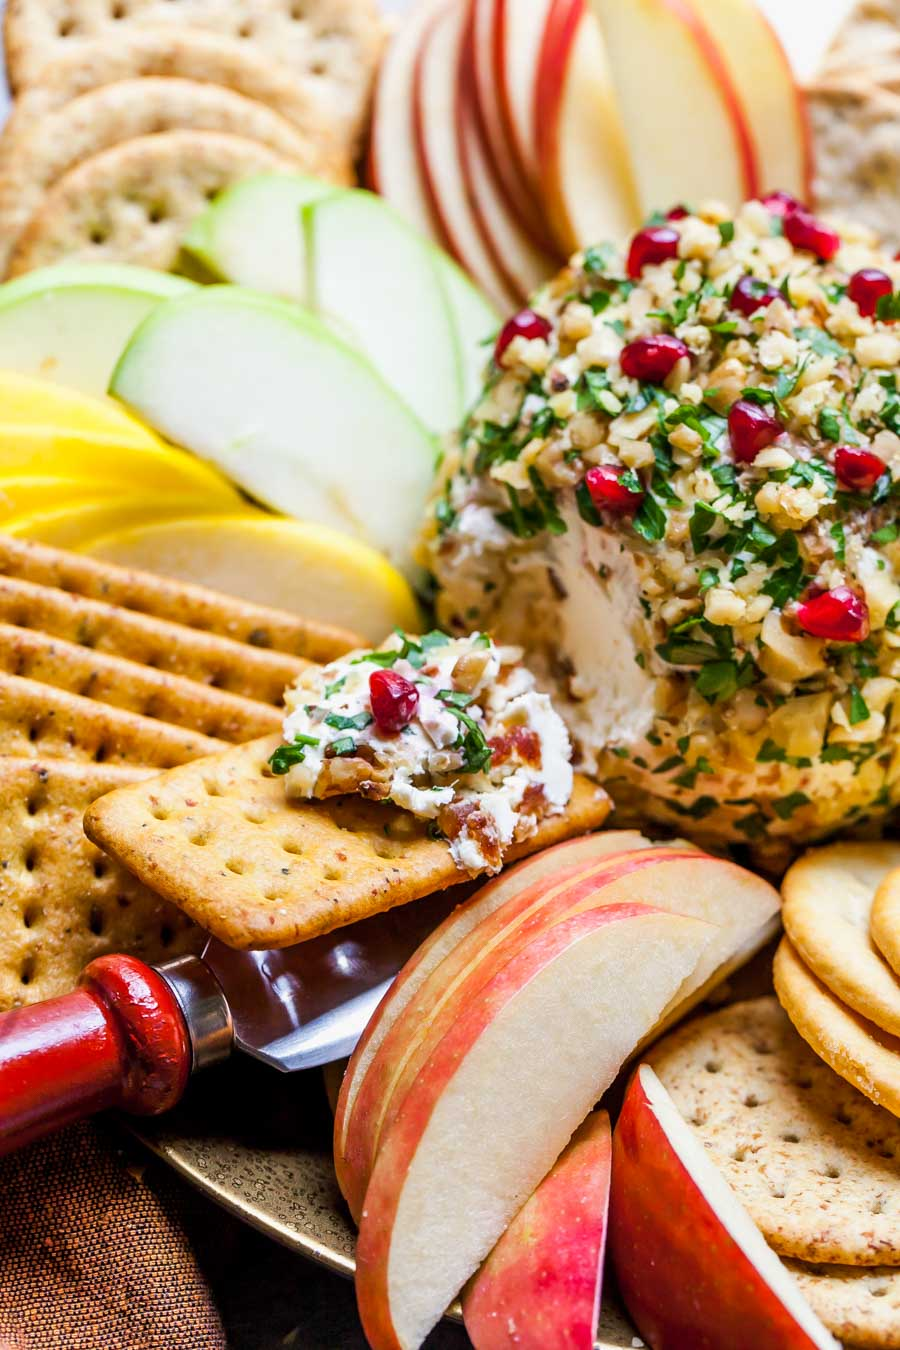 Walnut, Date, and Parsley Goat Cheese Ball